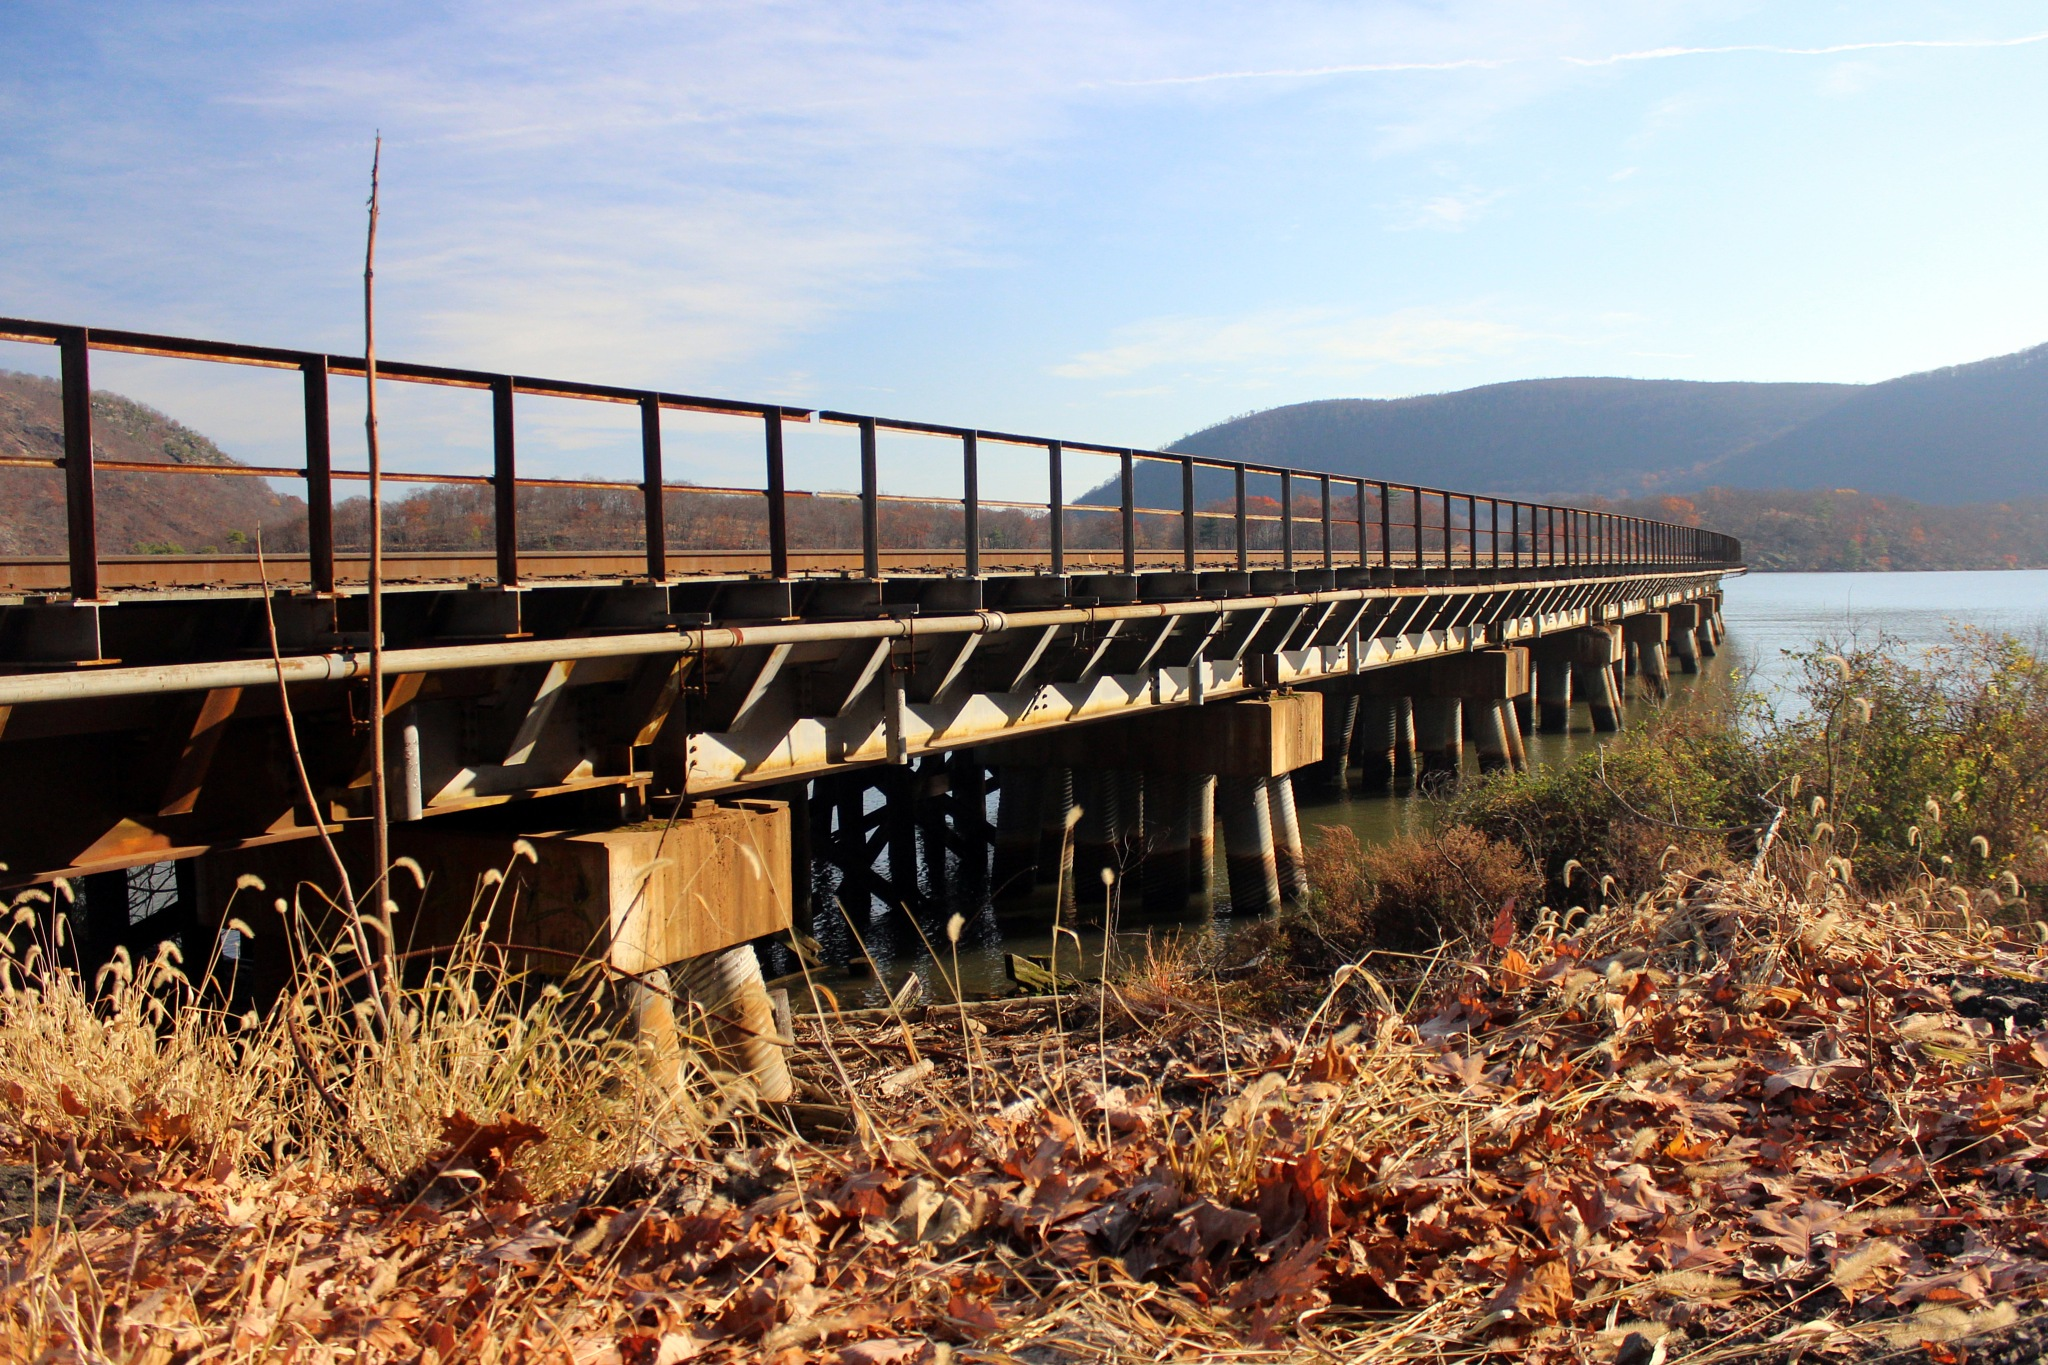 Bridge over water by Janet519